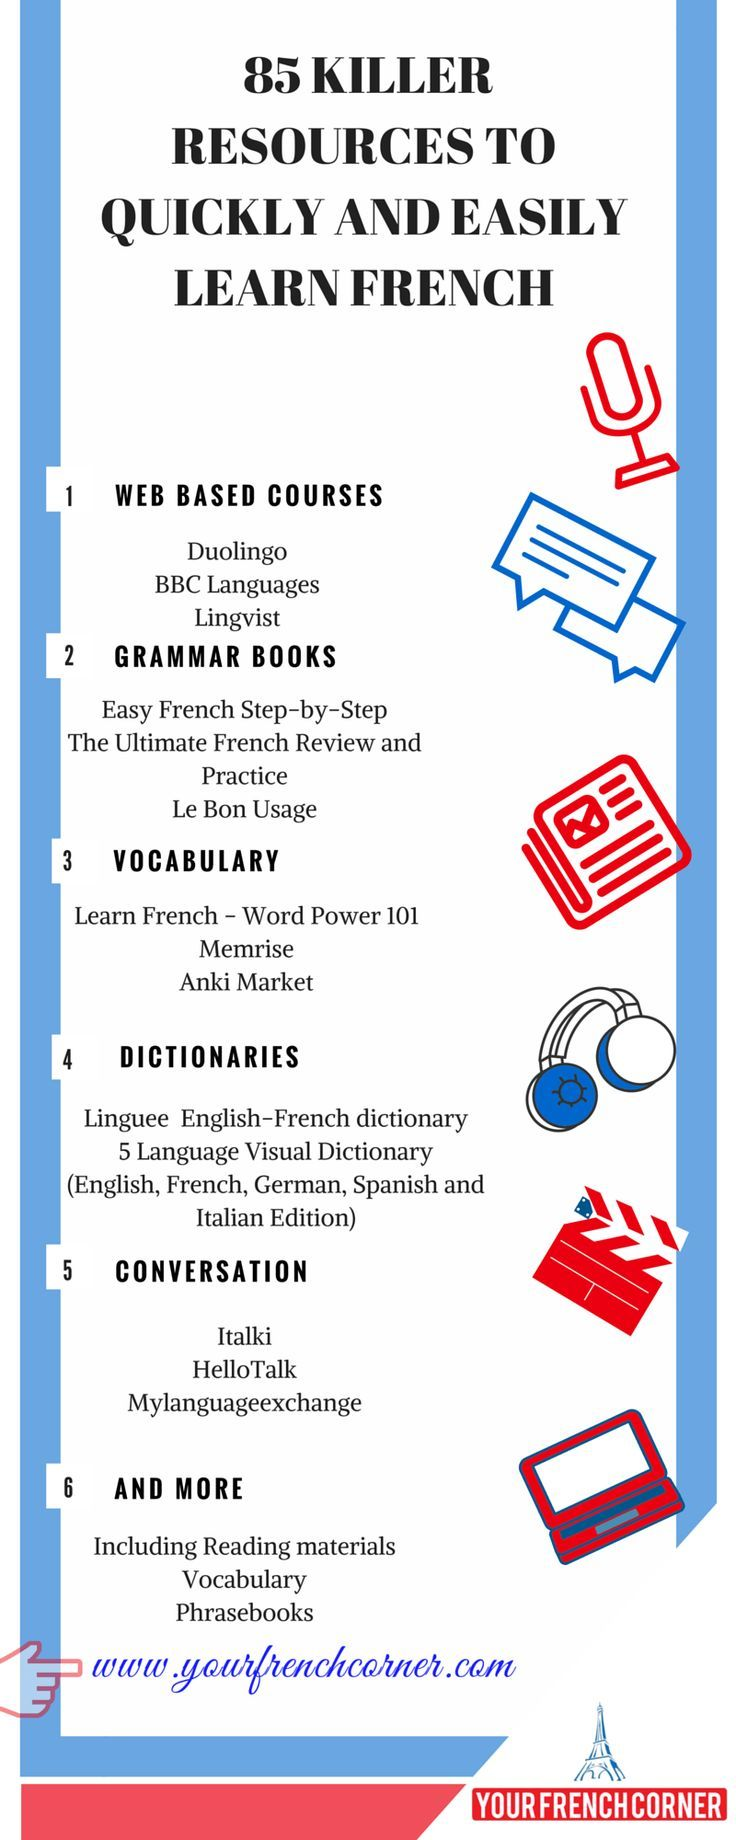 Learn the Top 25 Must-Know French Phrases! - YouTube